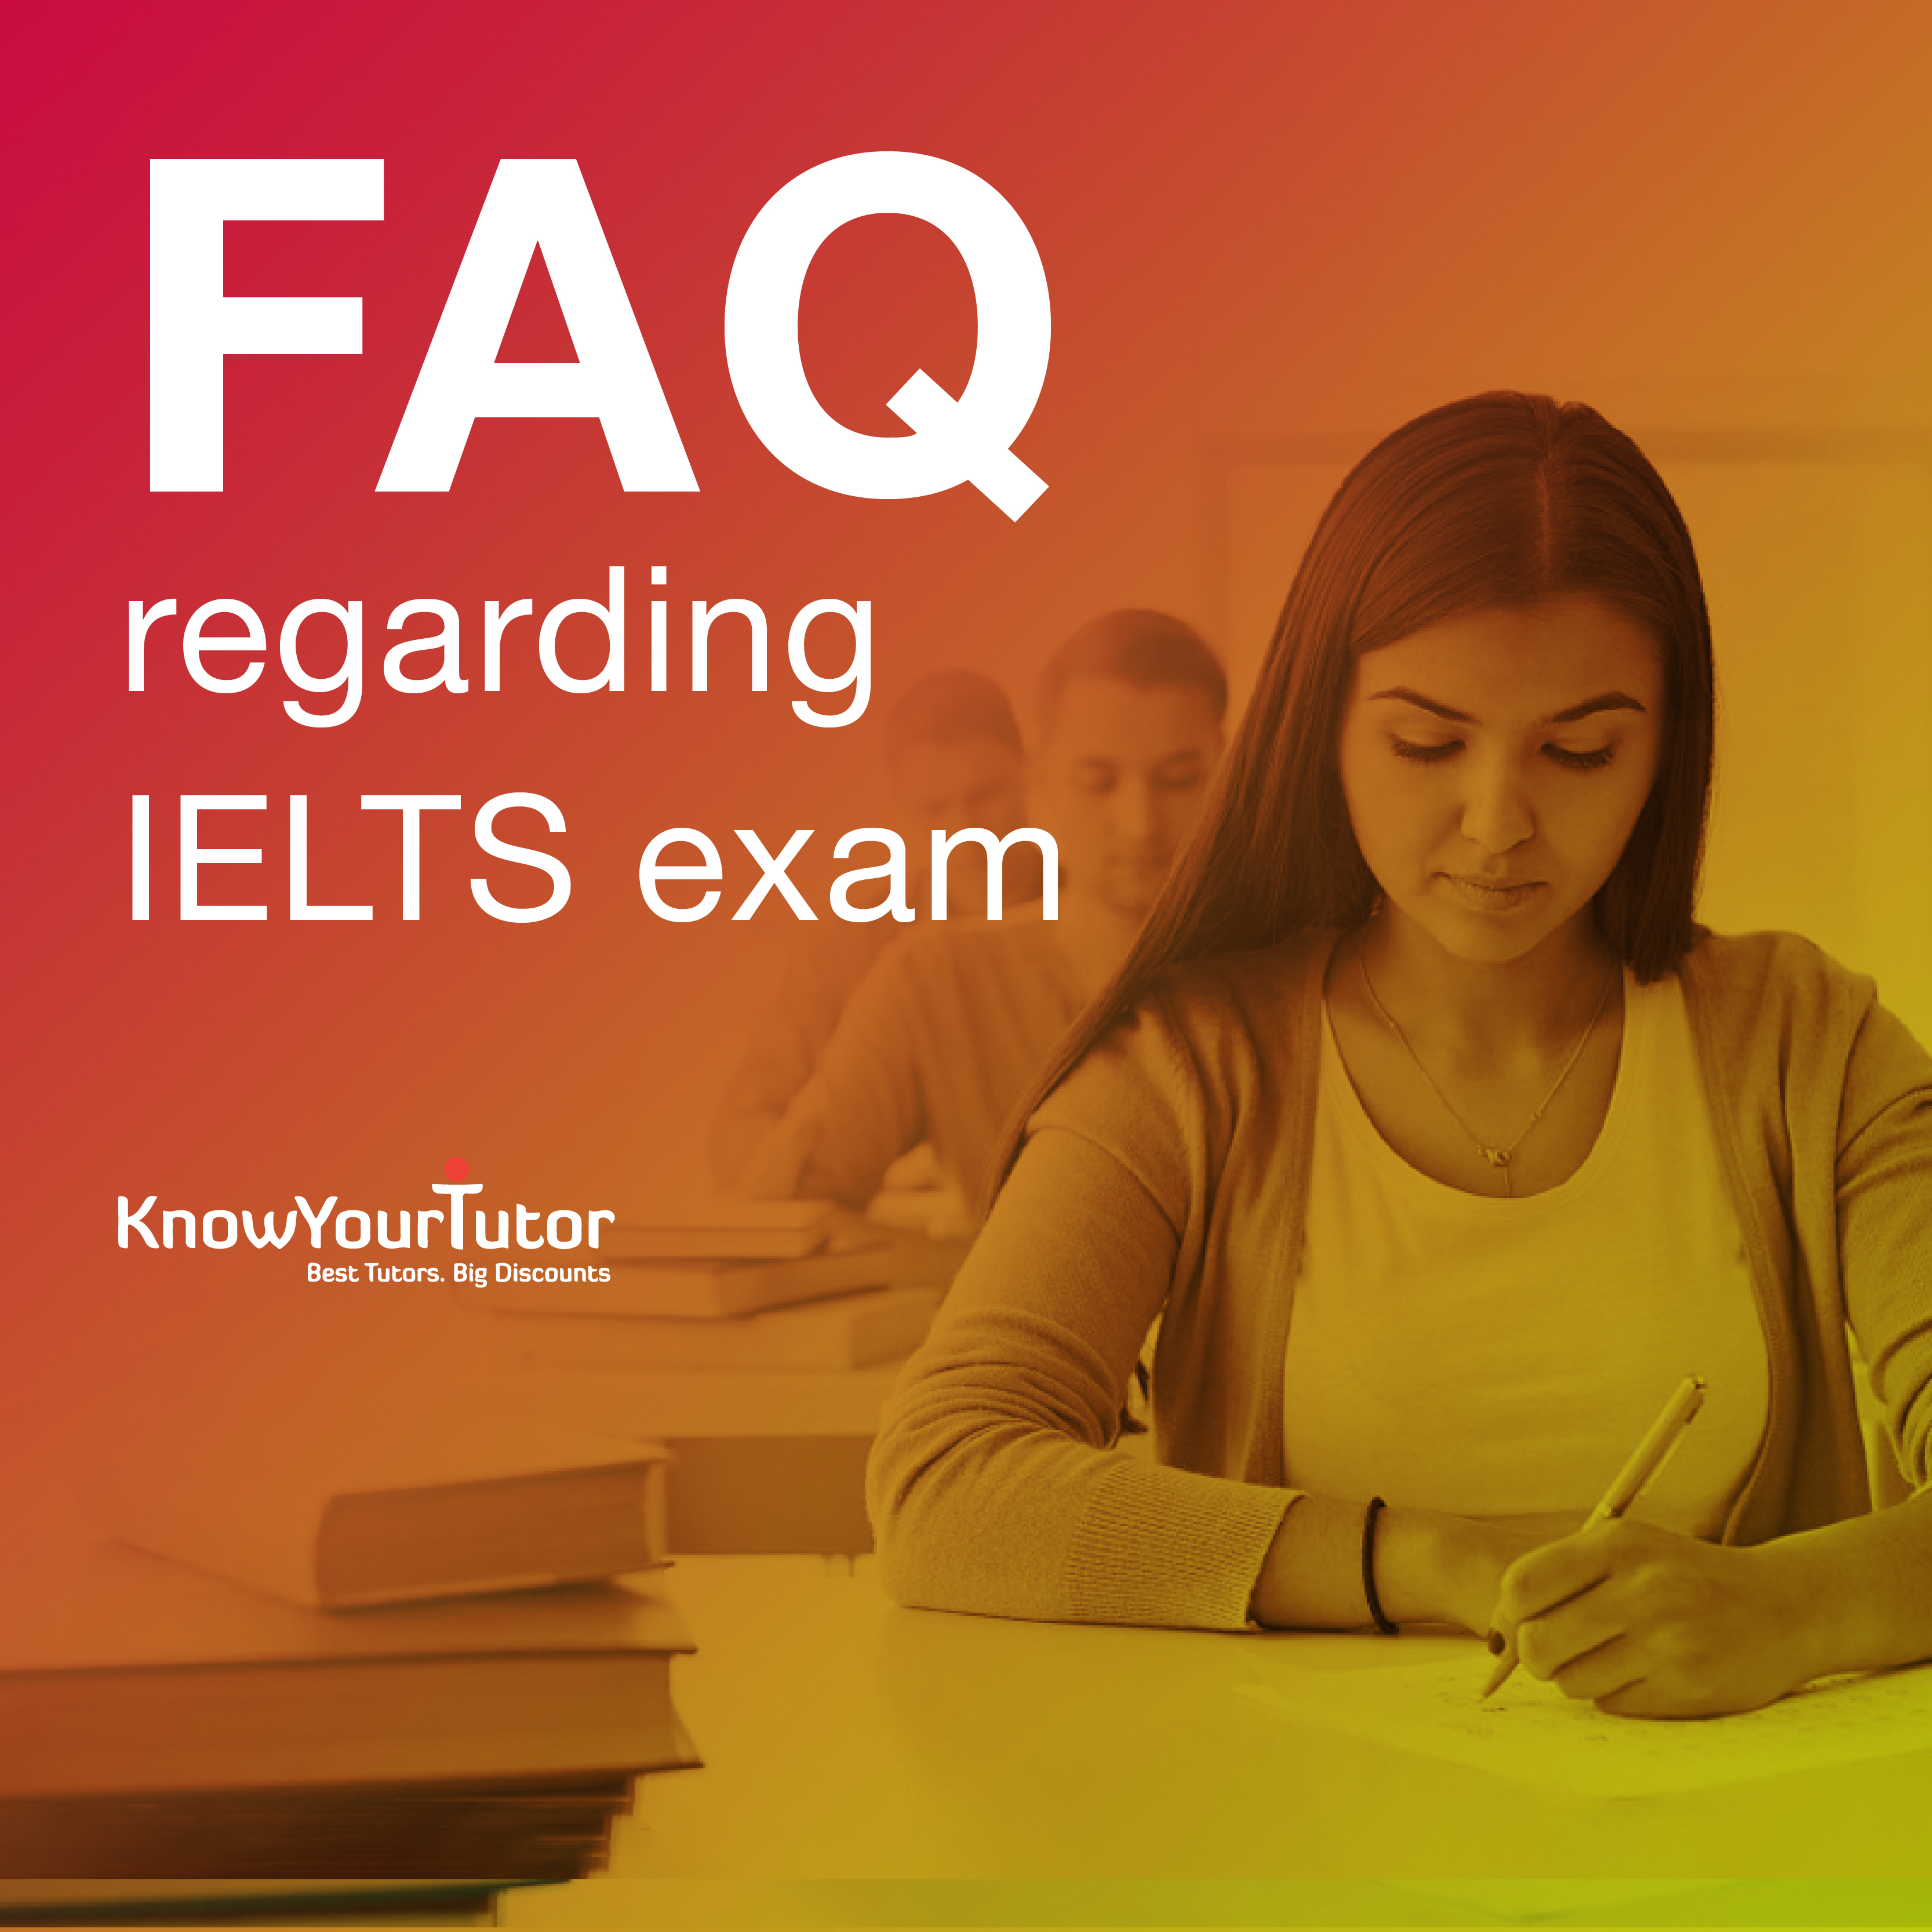 Frequently asked questions regarding IELTS exam